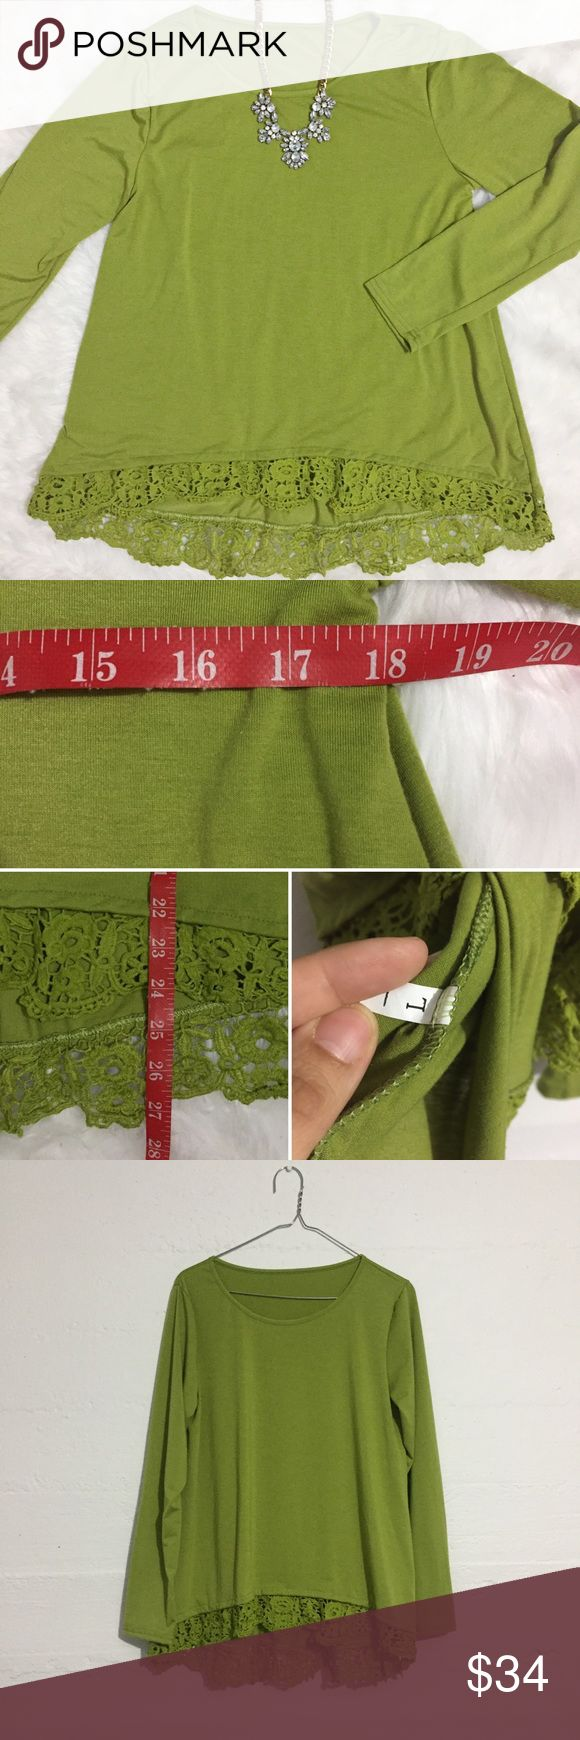 Green long sleeve top with Lace hem Green long sleeve top with Lace hem. There is no fabric content info available. Open to offers. No trades. Tops Tees - Long Sleeve